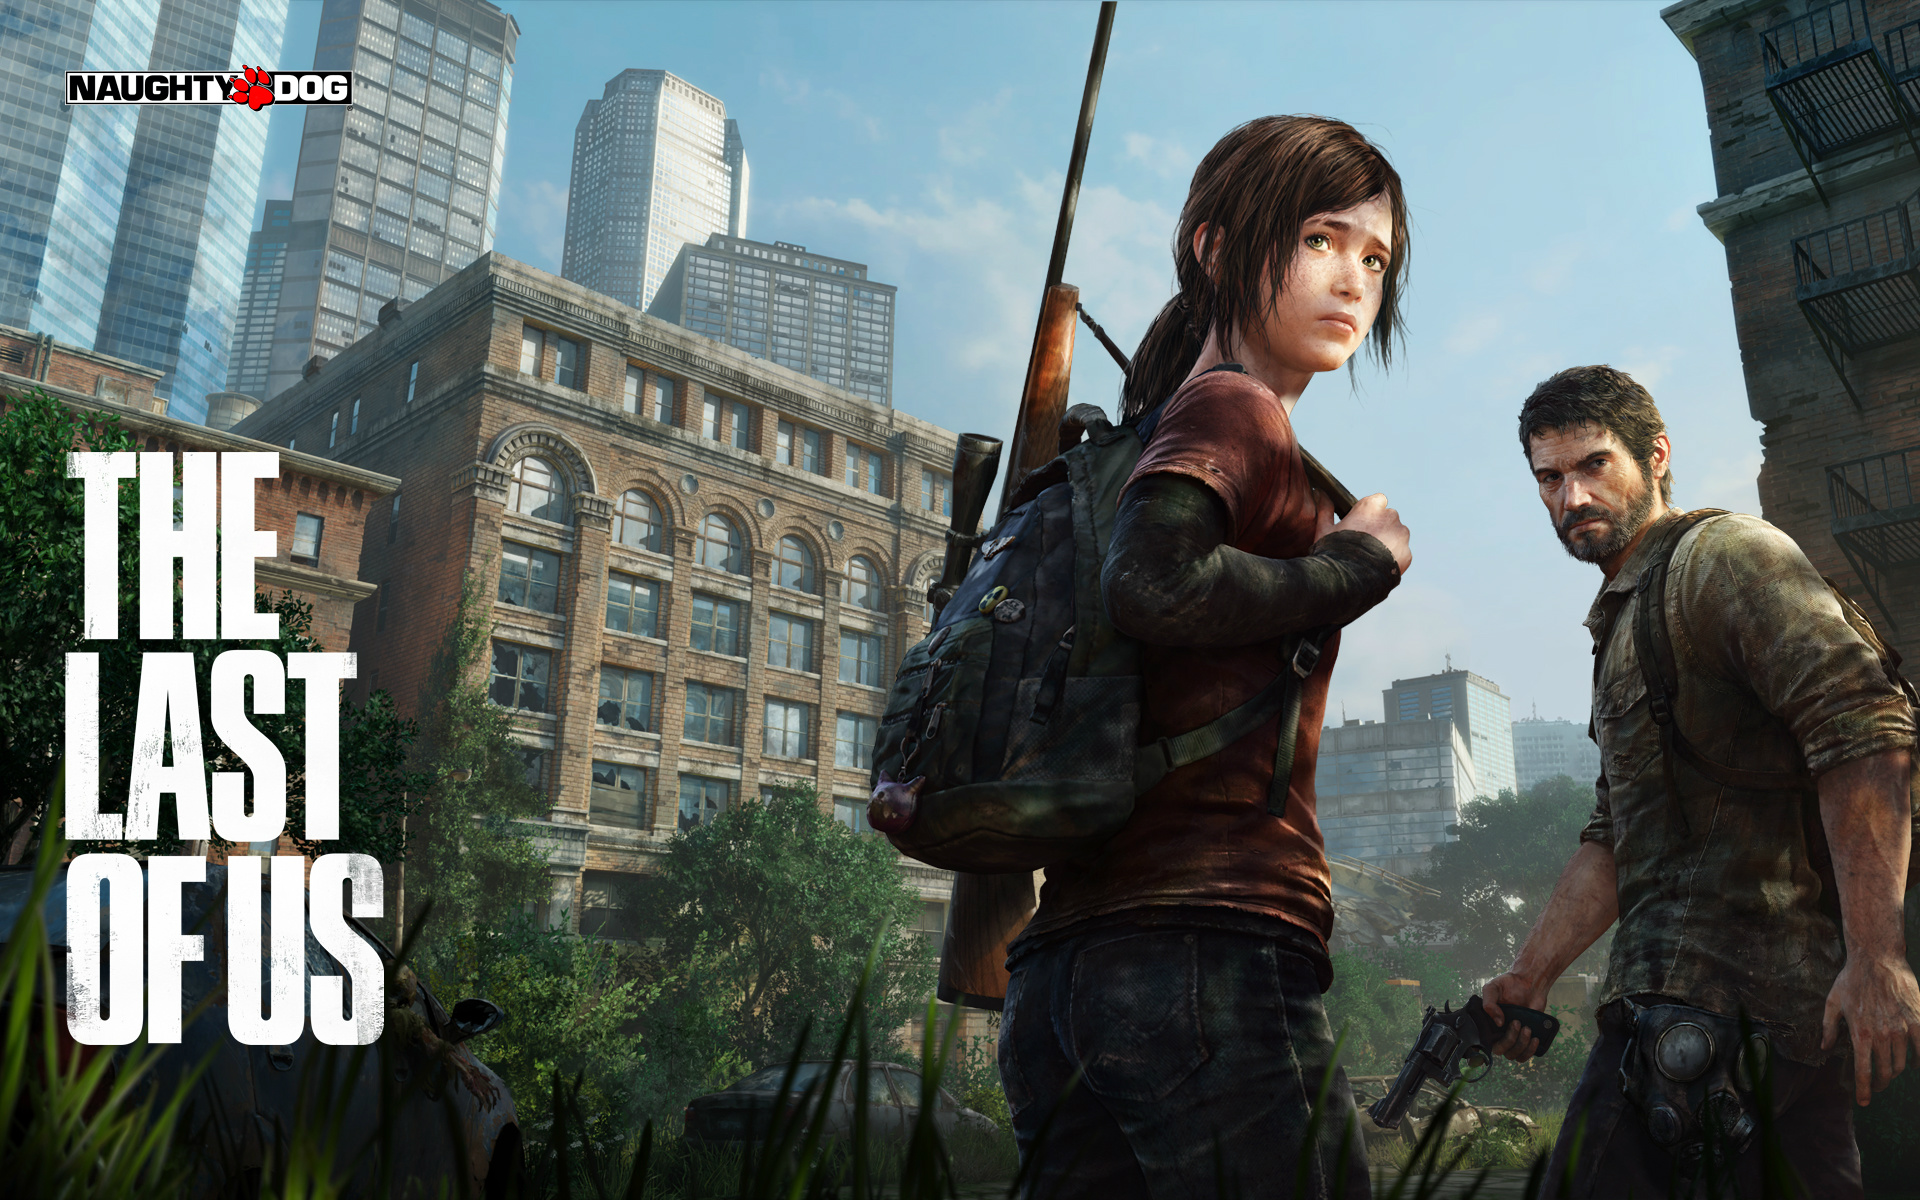 The Last of Us - A Let's Play of The Last of Us